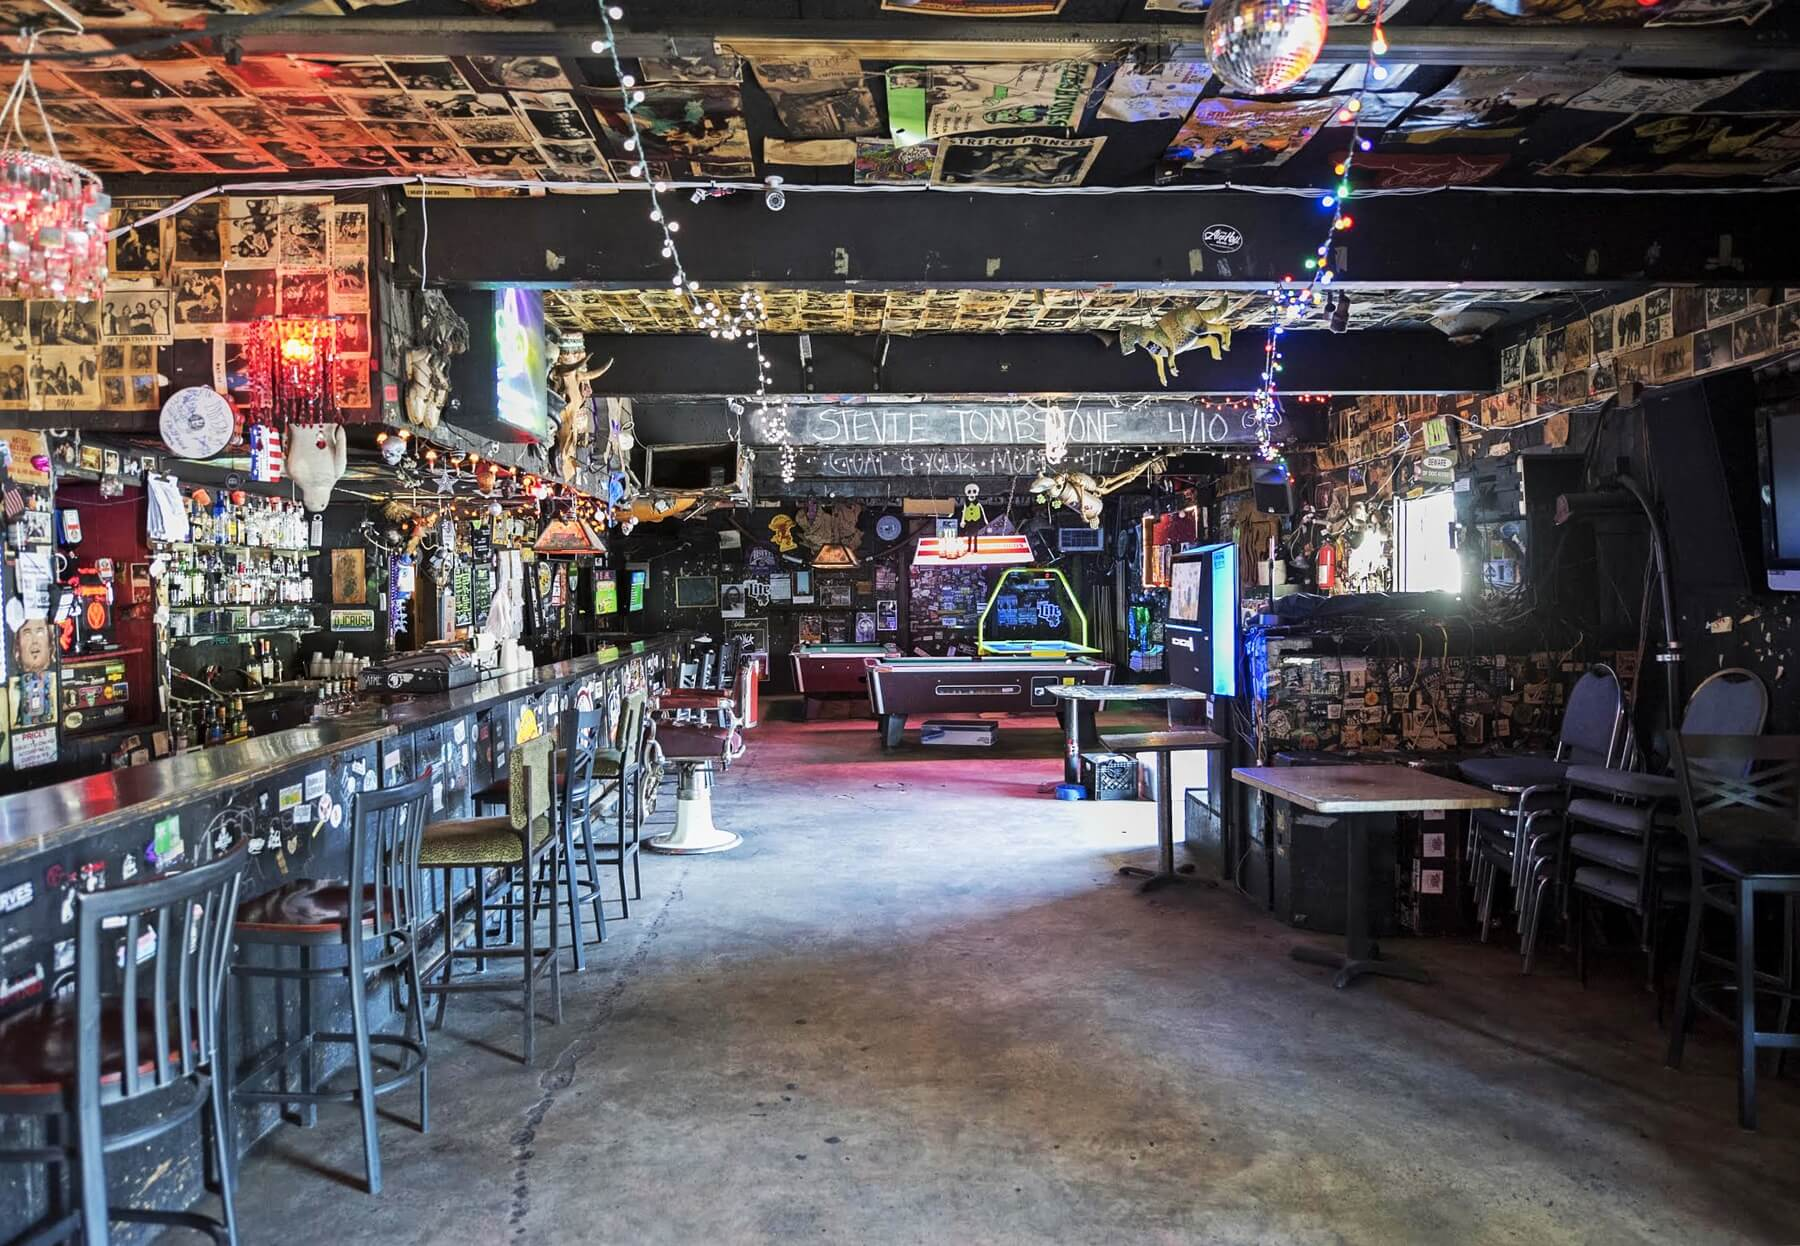 The Best Dive Bars To Grab A Drink Meal And Live Show In Birmingham